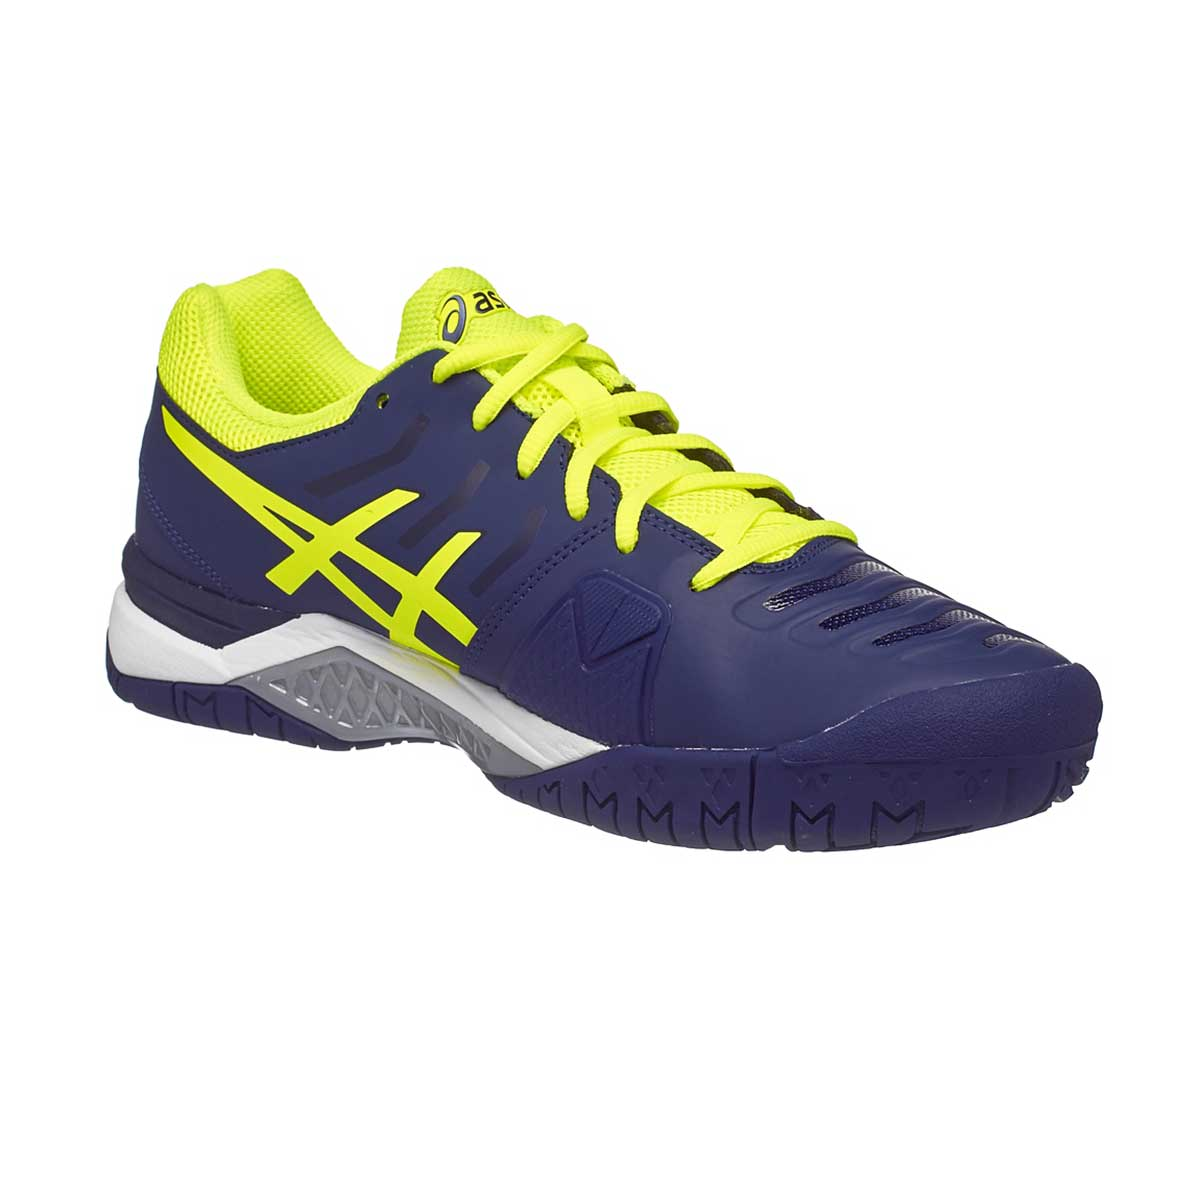 80edbb2f19b3 Buy Asics Gel-Challenger 11 Tennis Shoes (Blue Yellow Silver) Online